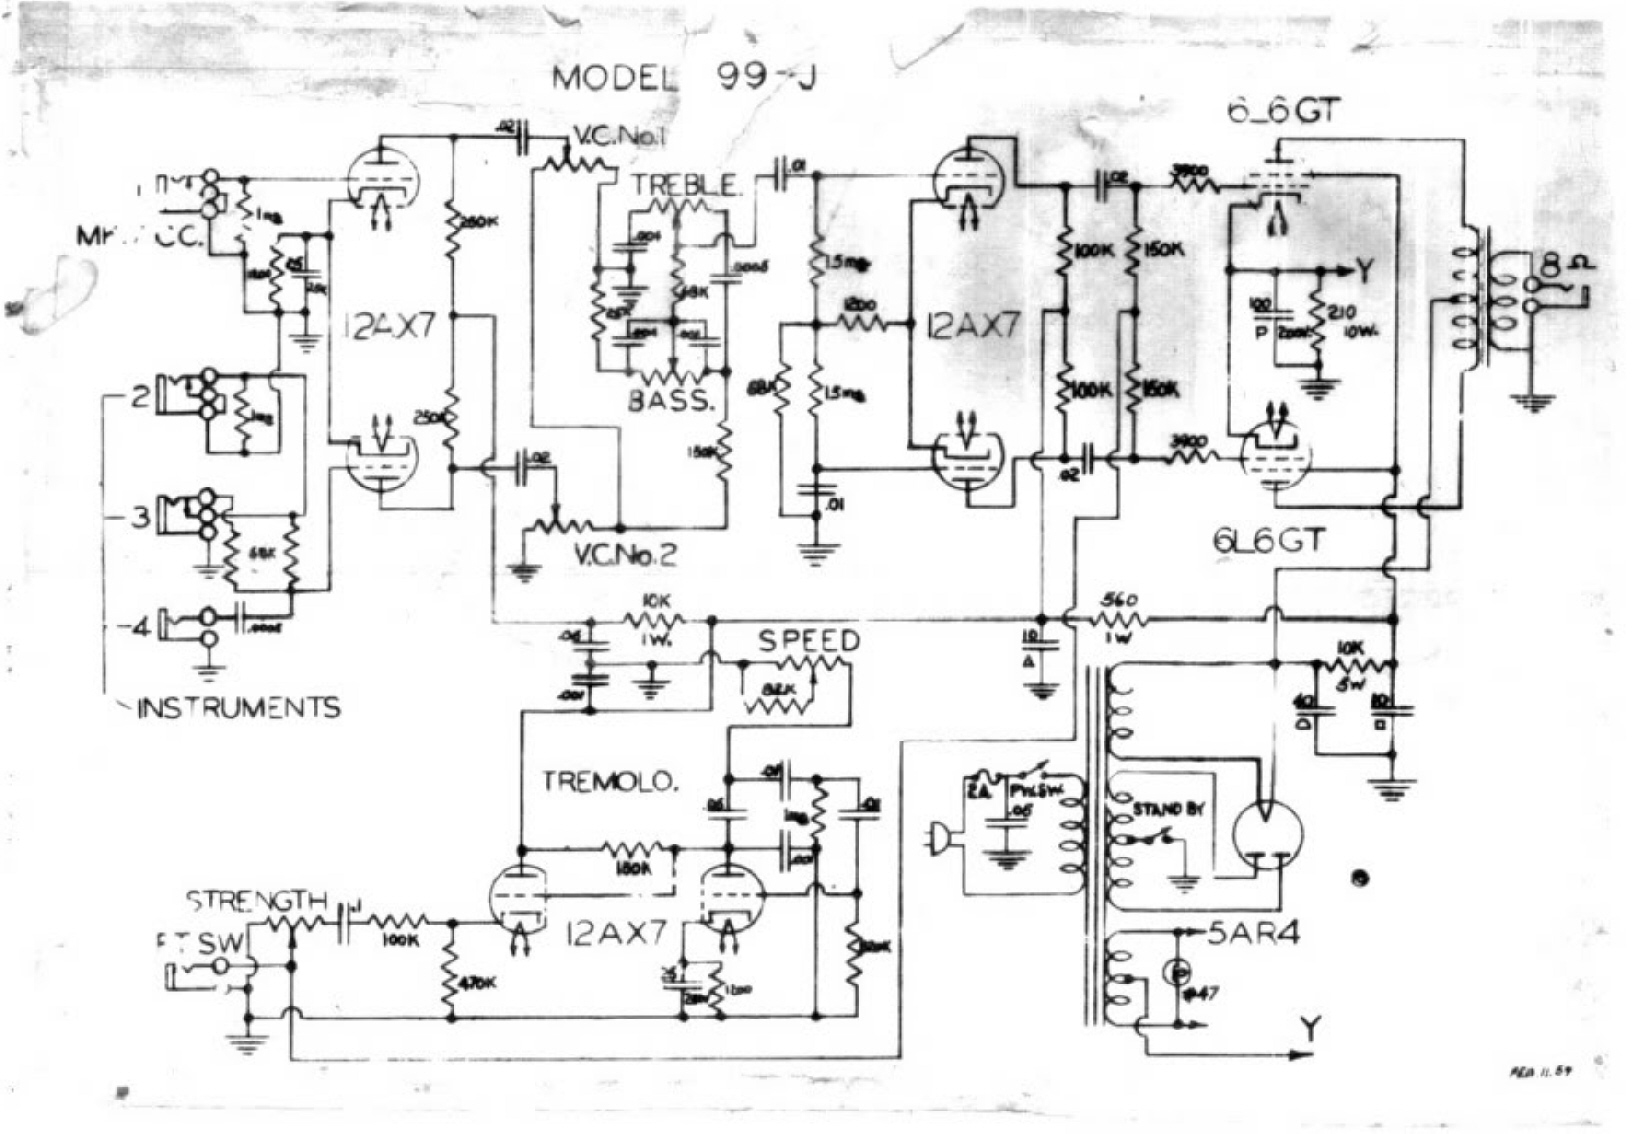 Schematics Amp Manuals Archives